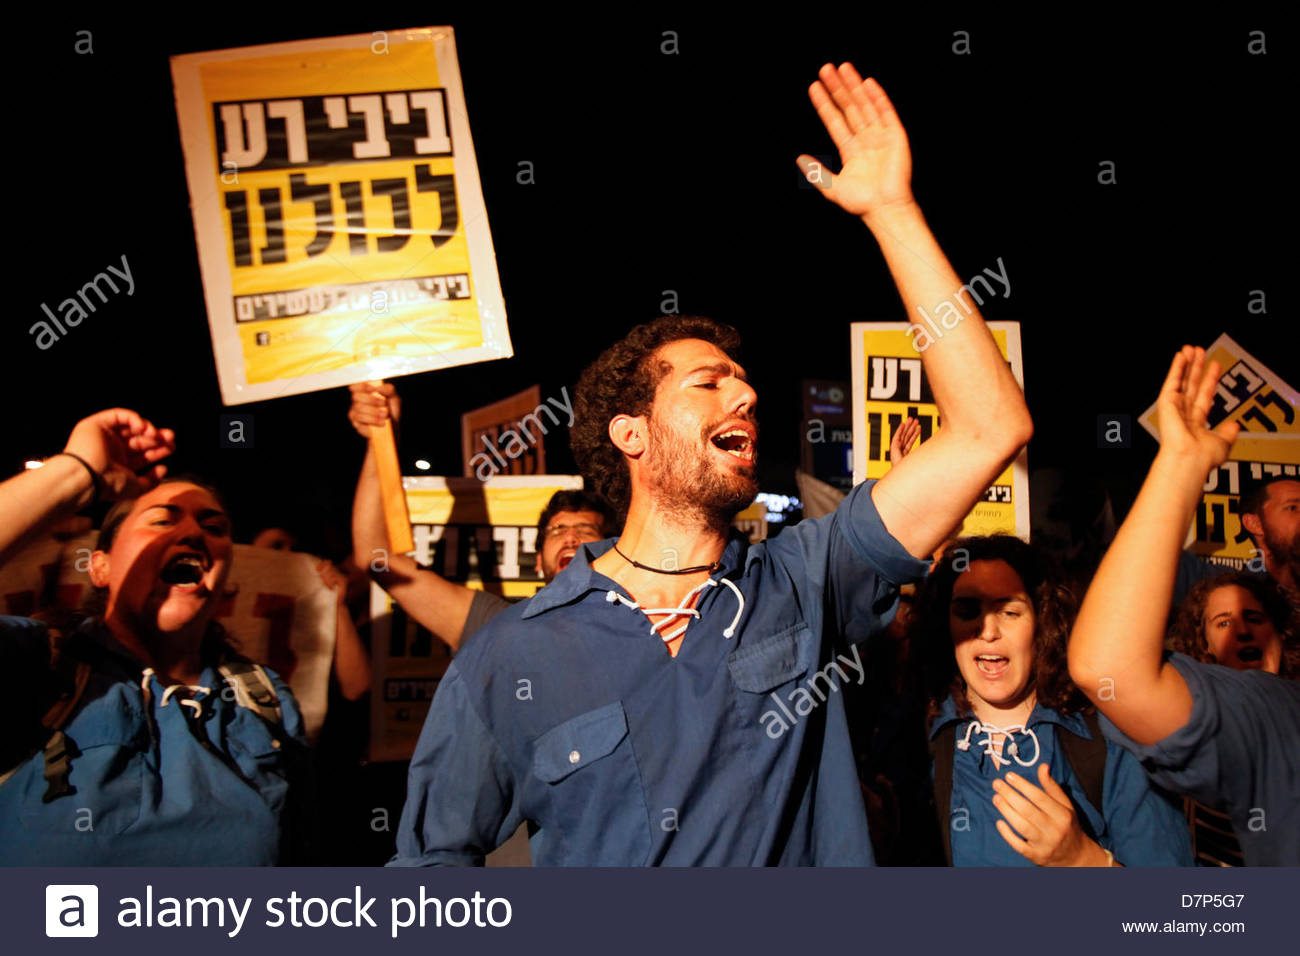 Members of the youth wing of Israeli Labor Party holding placards which reads 'Bibi is bad for us' and shouting - Stock Image